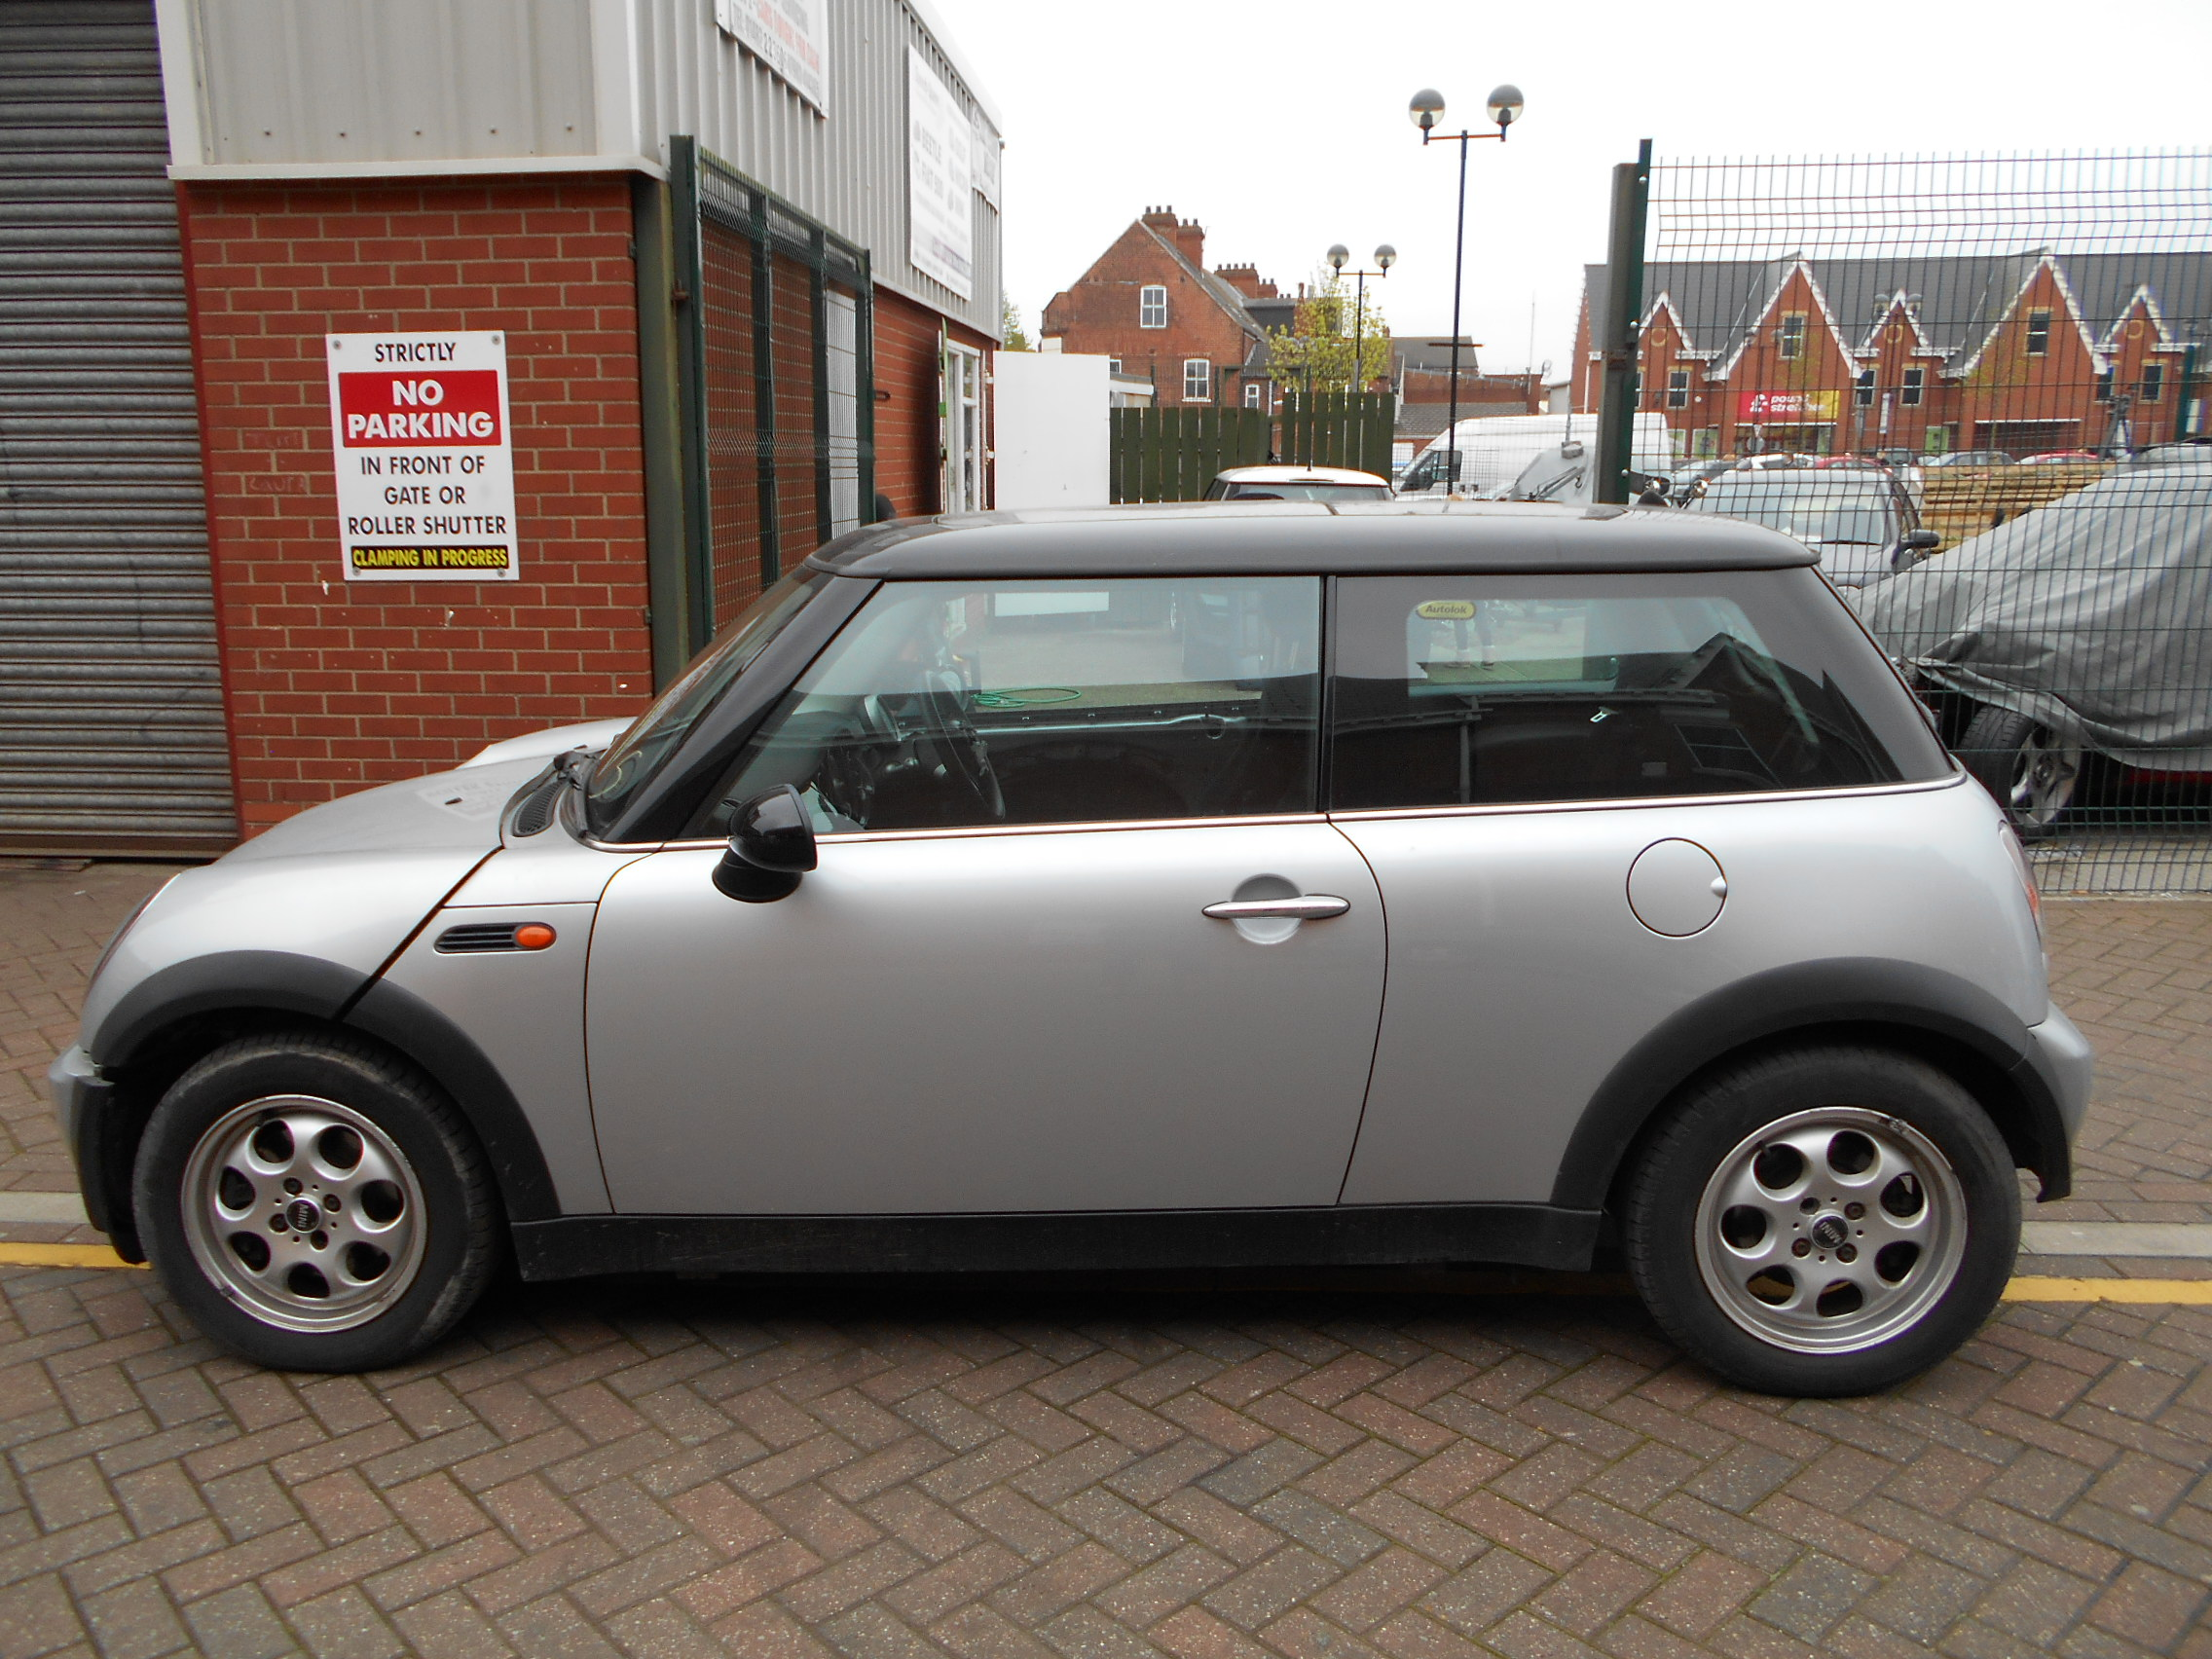 03 Silver Automatic 1.6 BMW Mini Cooper - 2